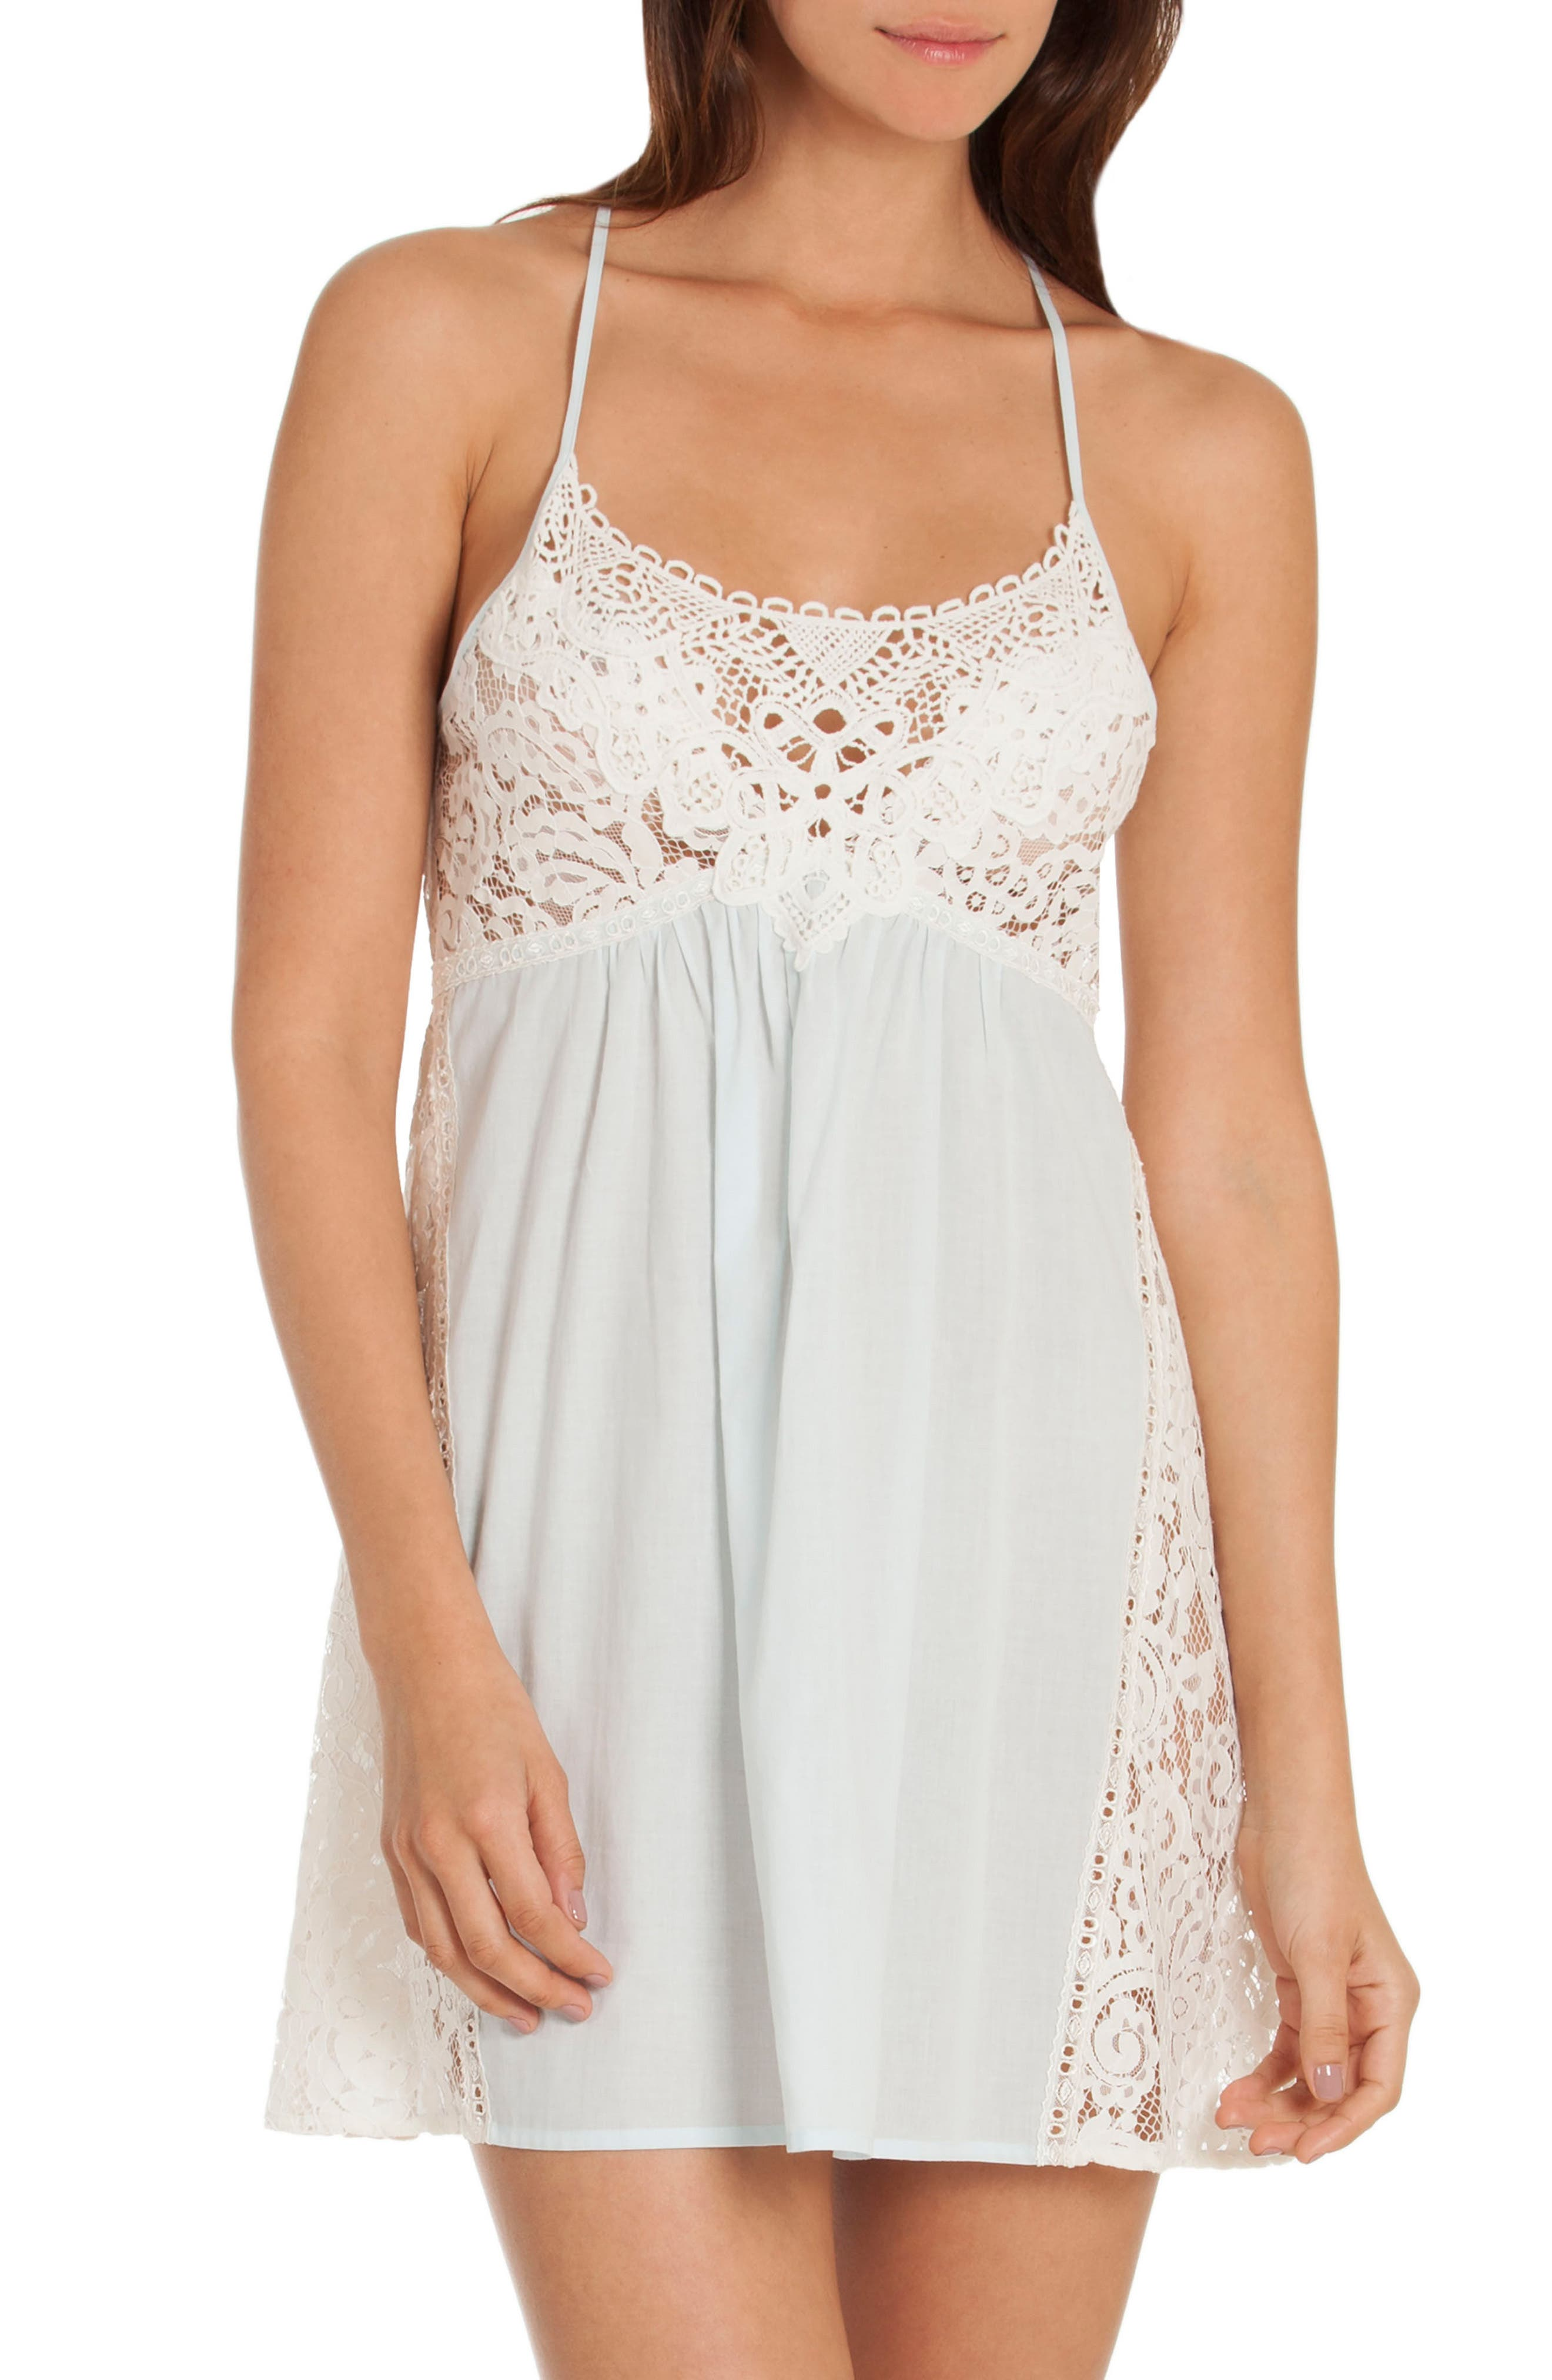 Lace Chemise,                             Main thumbnail 1, color,                             Skyfall/ Beige